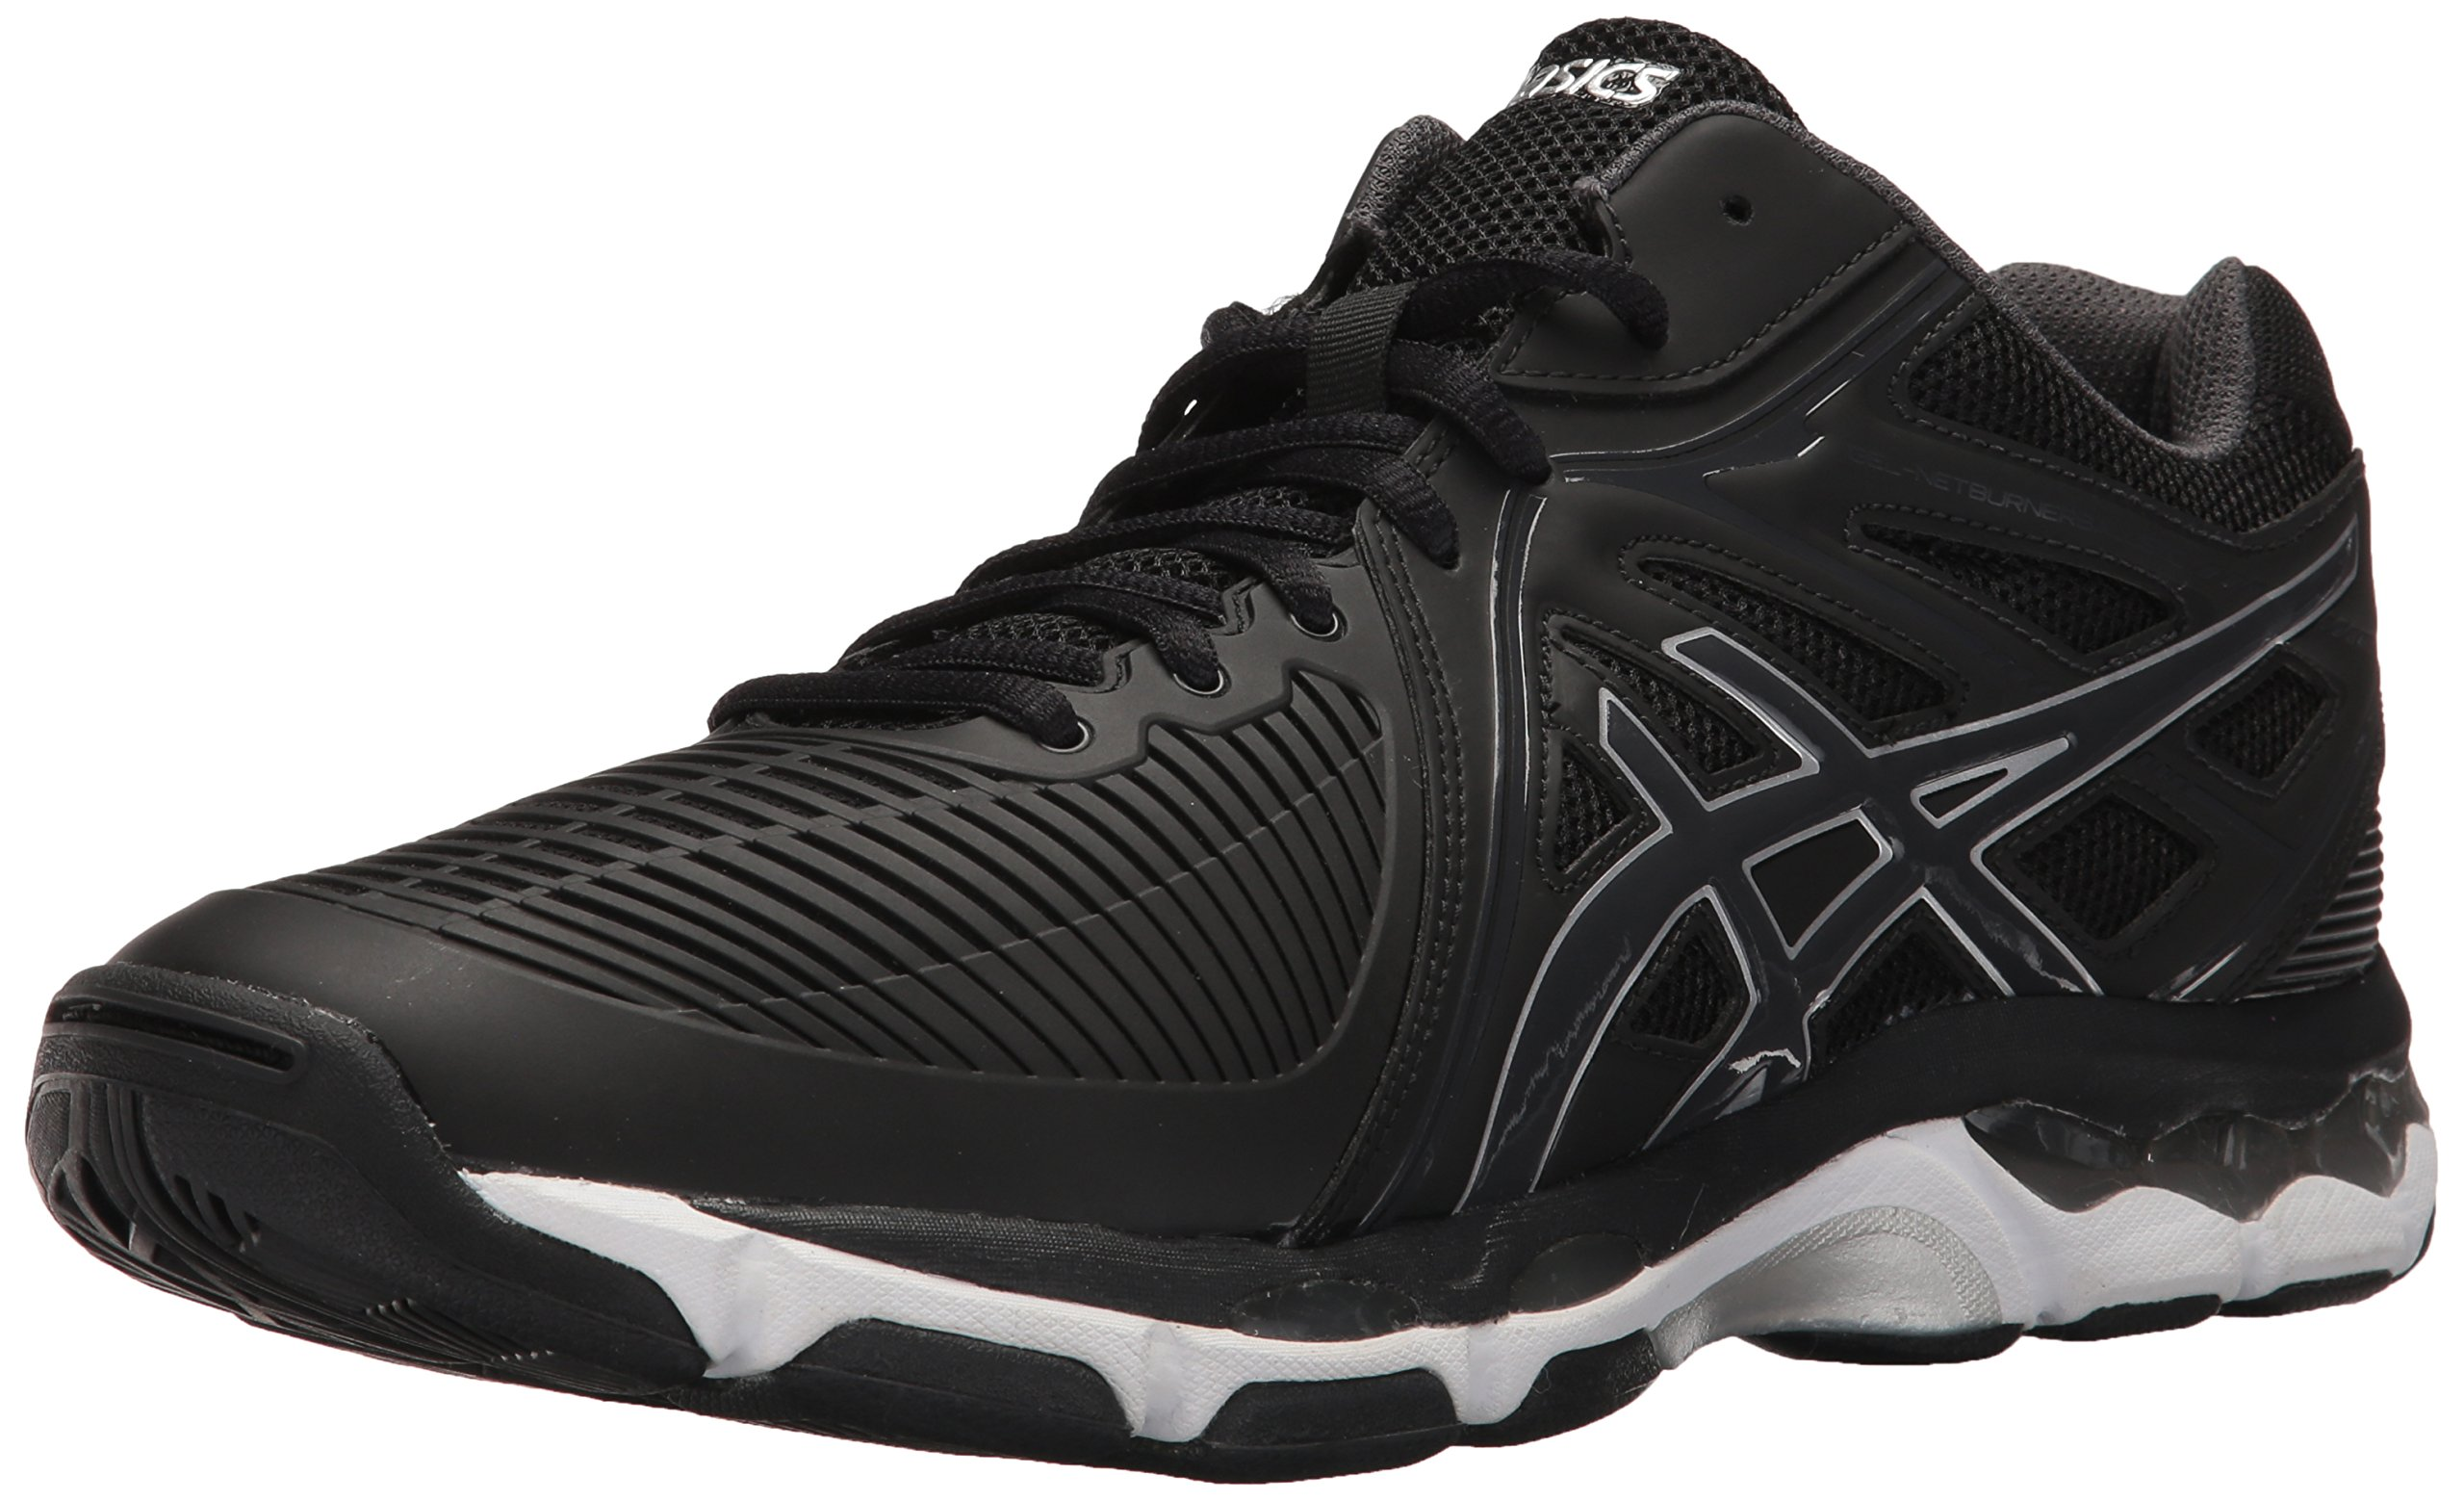 ASICS Men's Gel-Netburner Ballistic MT Volleyball-Shoes, Black/Dark Grey/Silver, 8 Medium US